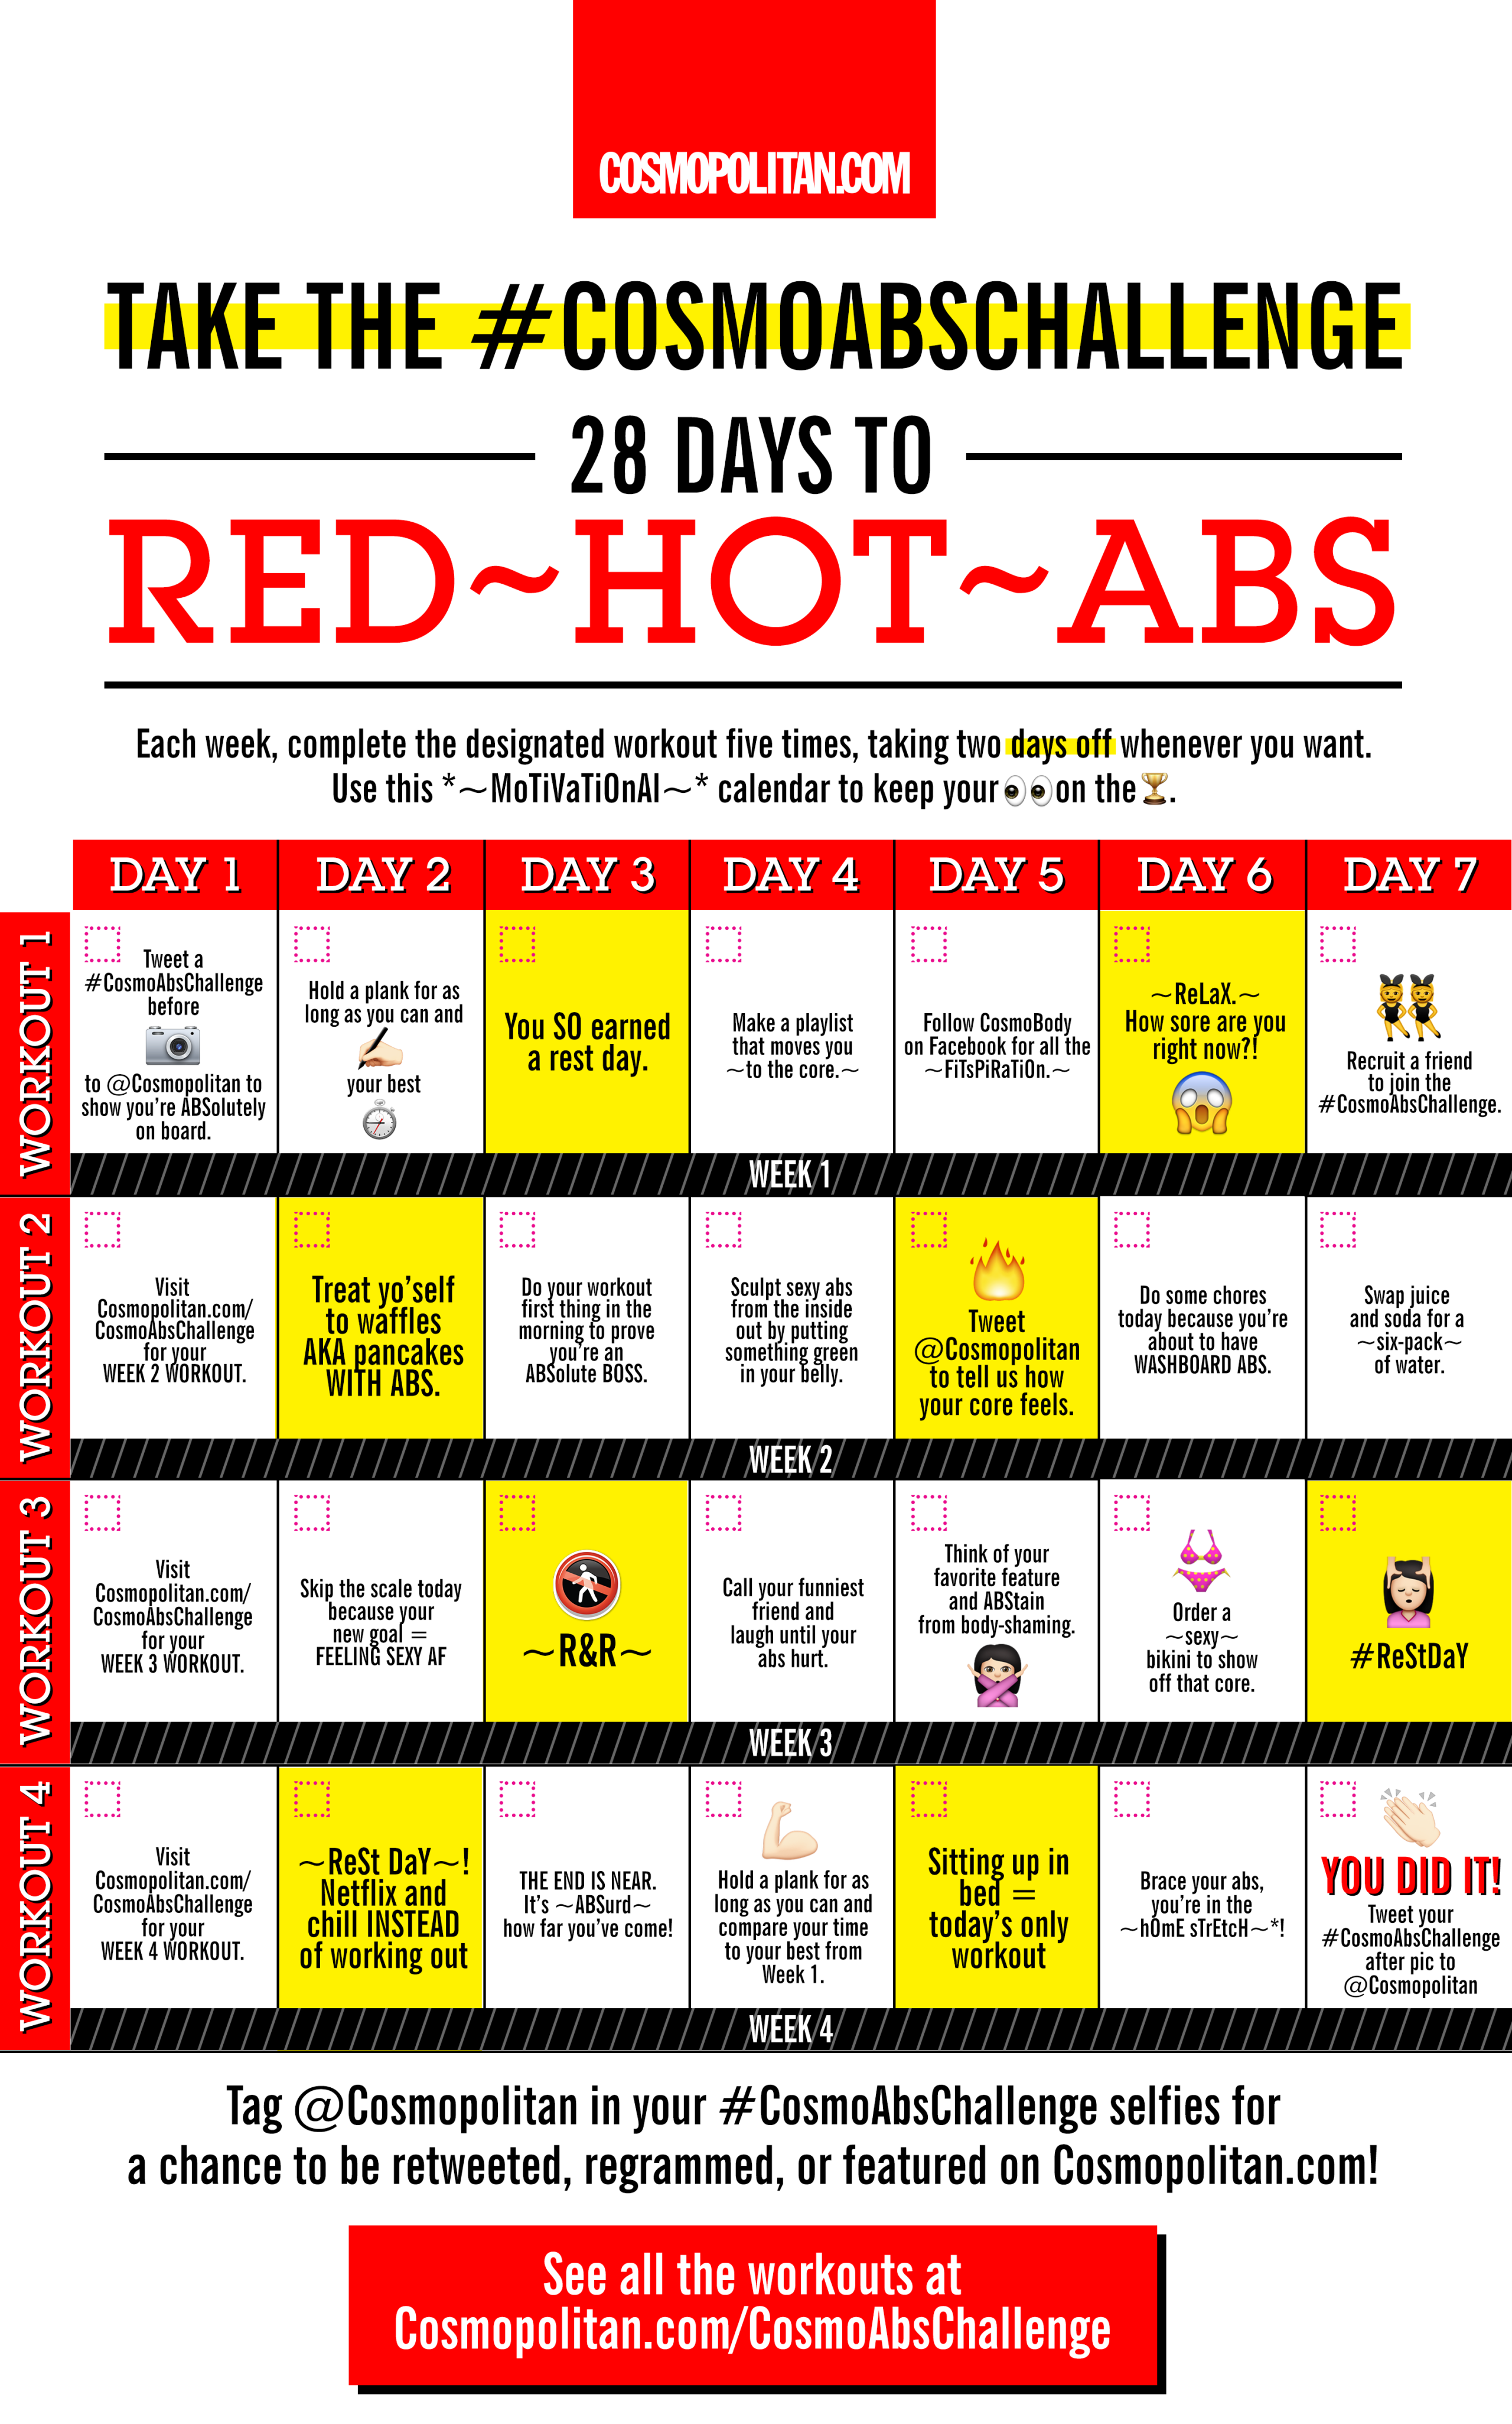 Ab workout 4 weeks postpartum sexual health